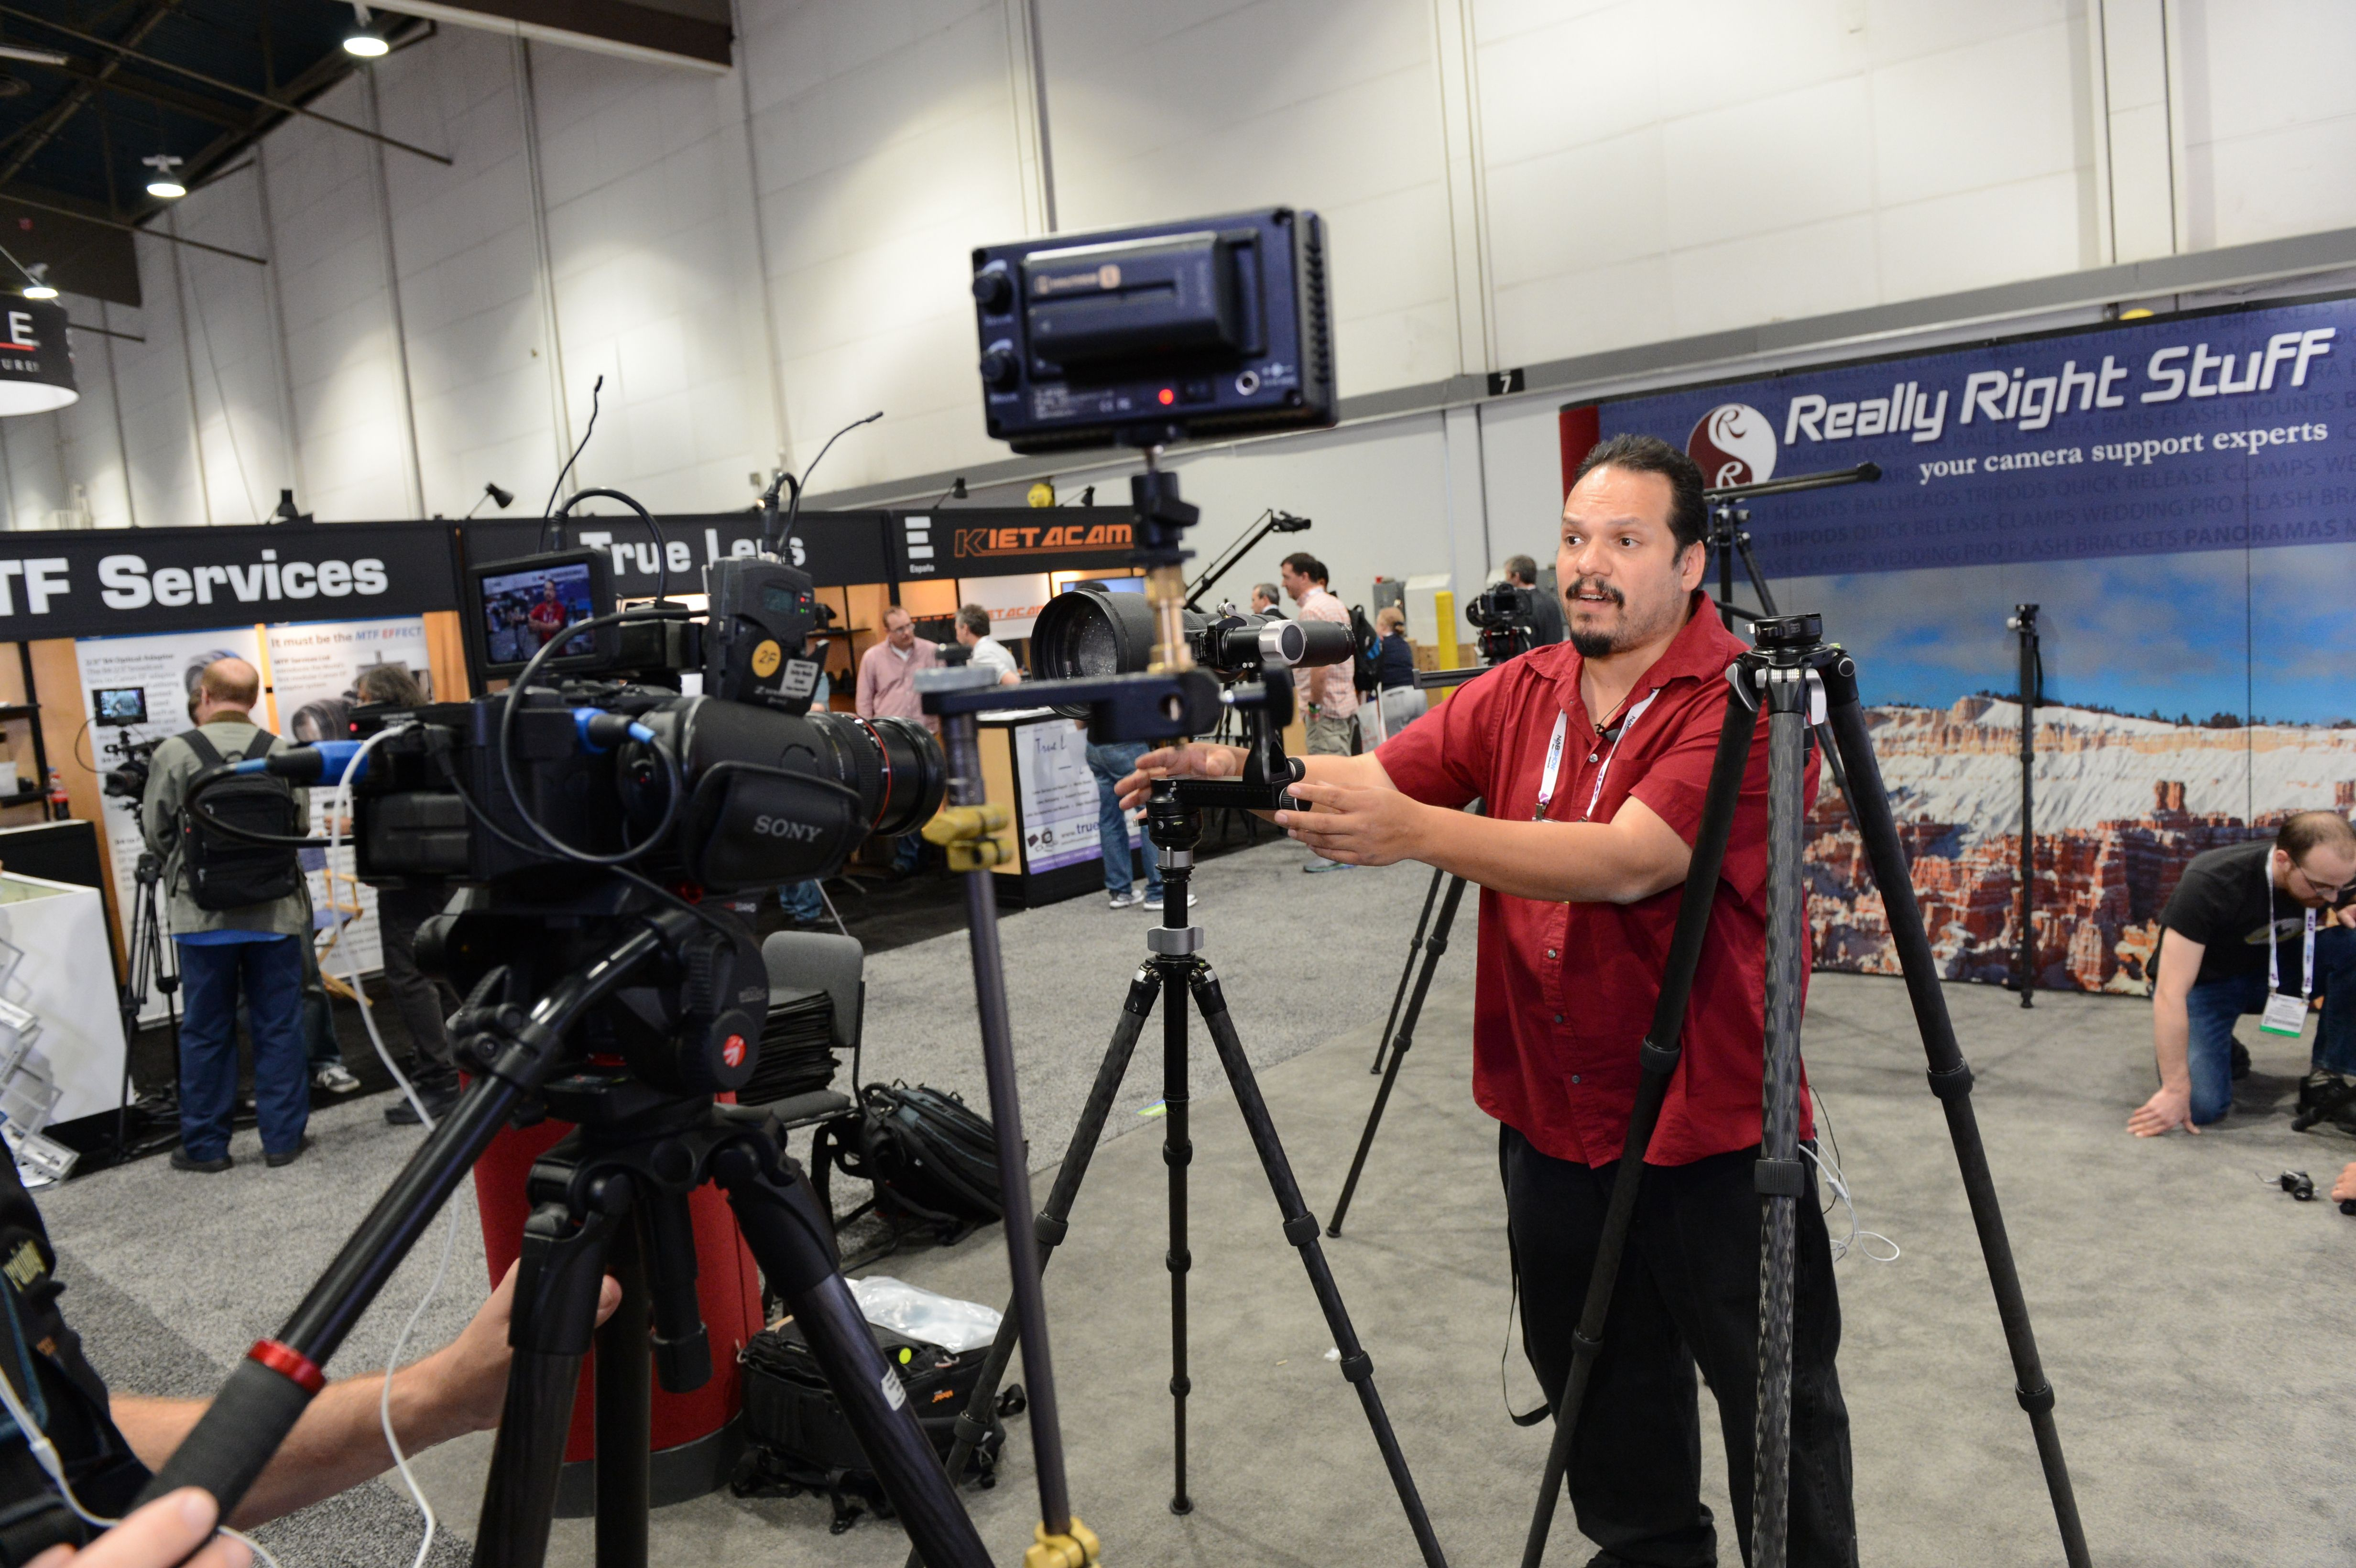 Demo of the New VG-02 Video Gimbal Head from Really Right Stuff #NAB2013 #NABShow